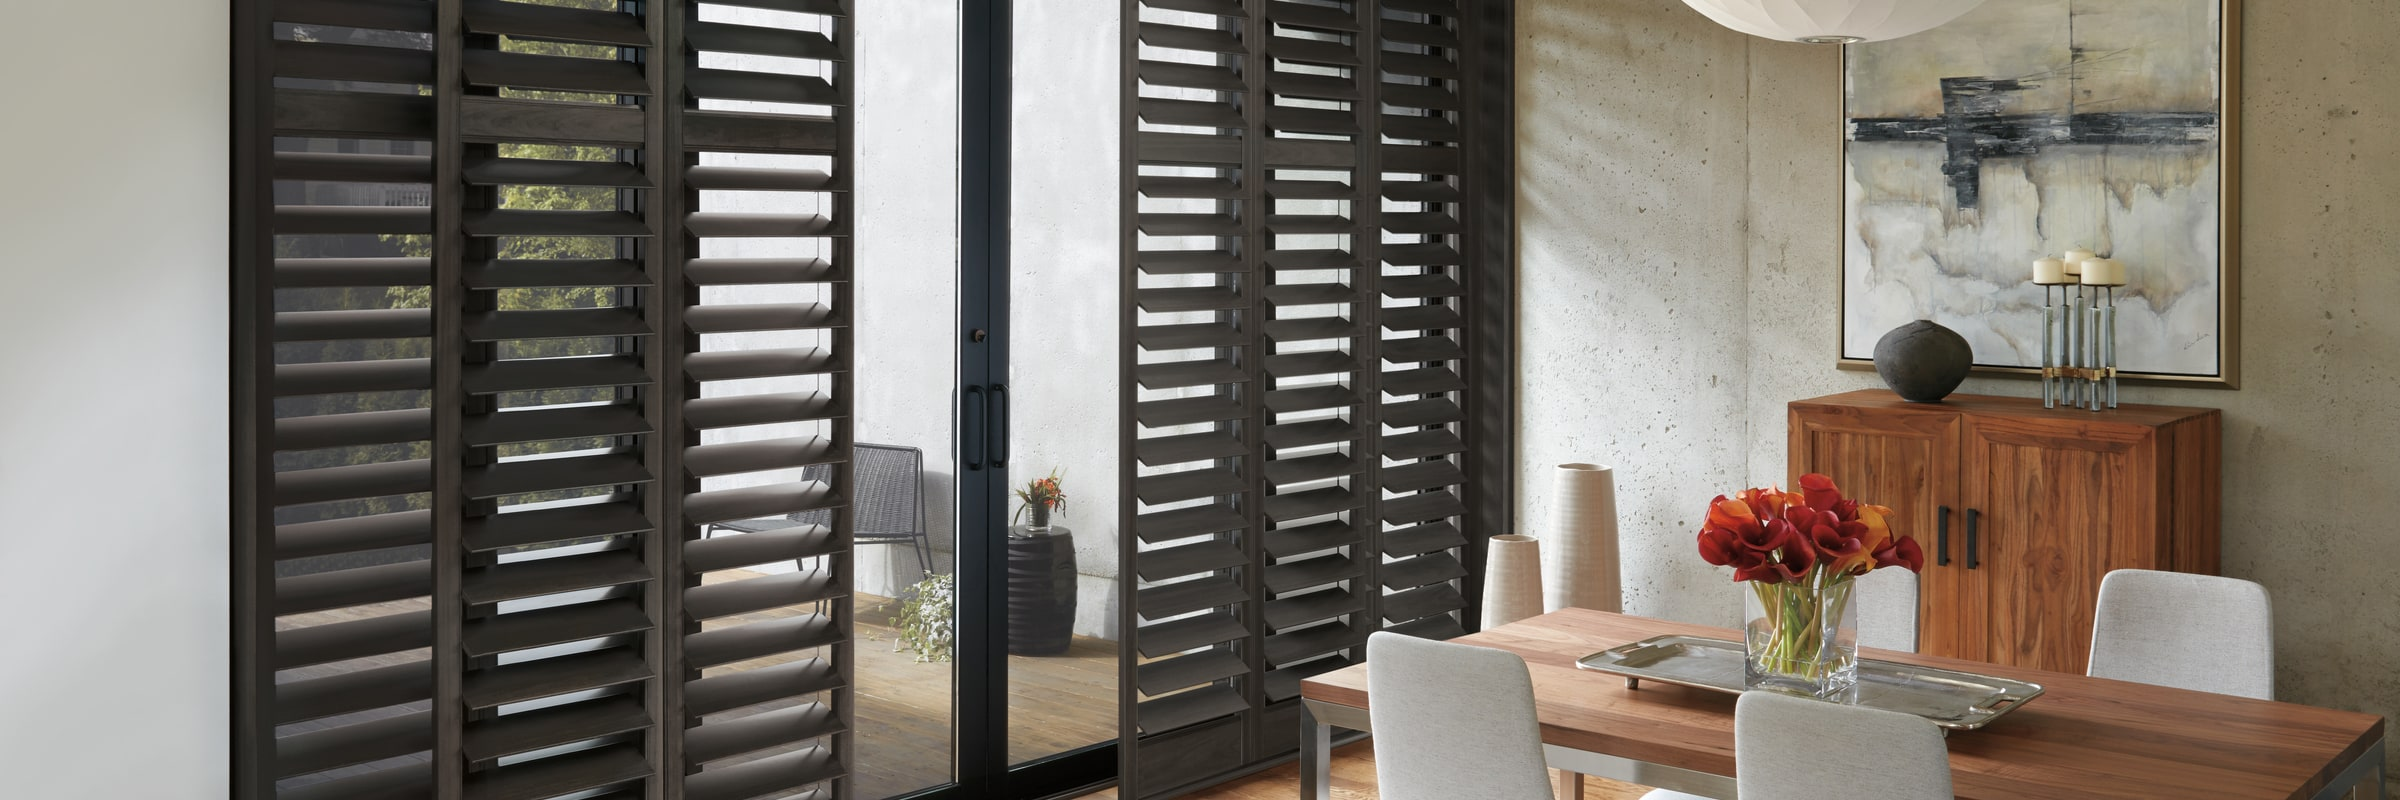 Hybrid Interior Shutters In Hybrid Urban Grey   NewStyle ...